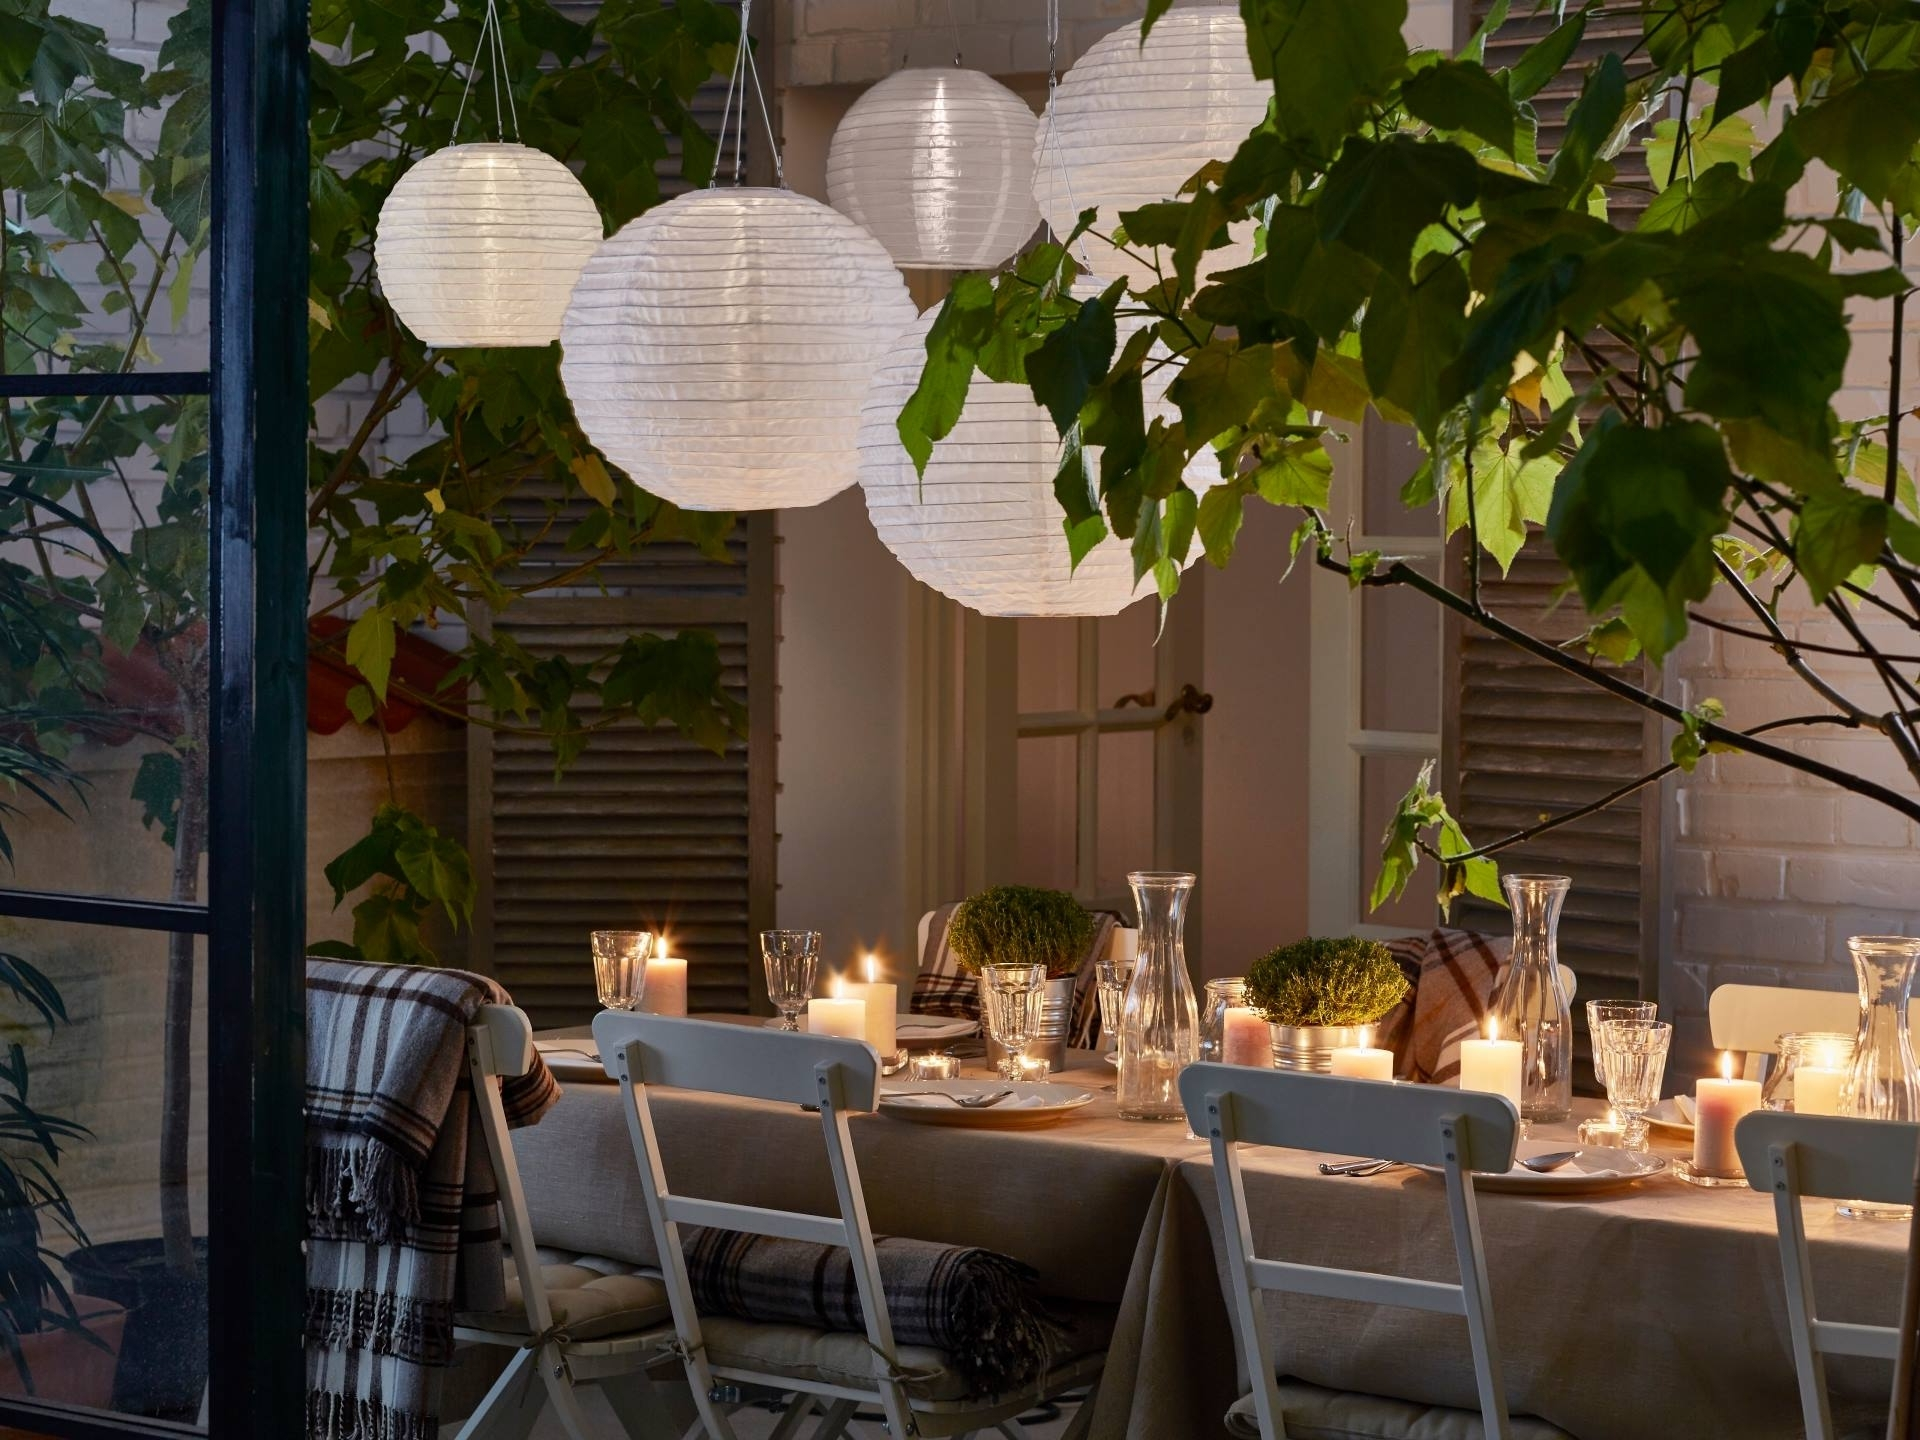 Popular Diy : Ways Decorate With Paper Lanterns Outdoor Lantern Party Lights In Outdoor Hanging Paper Lanterns (View 14 of 20)